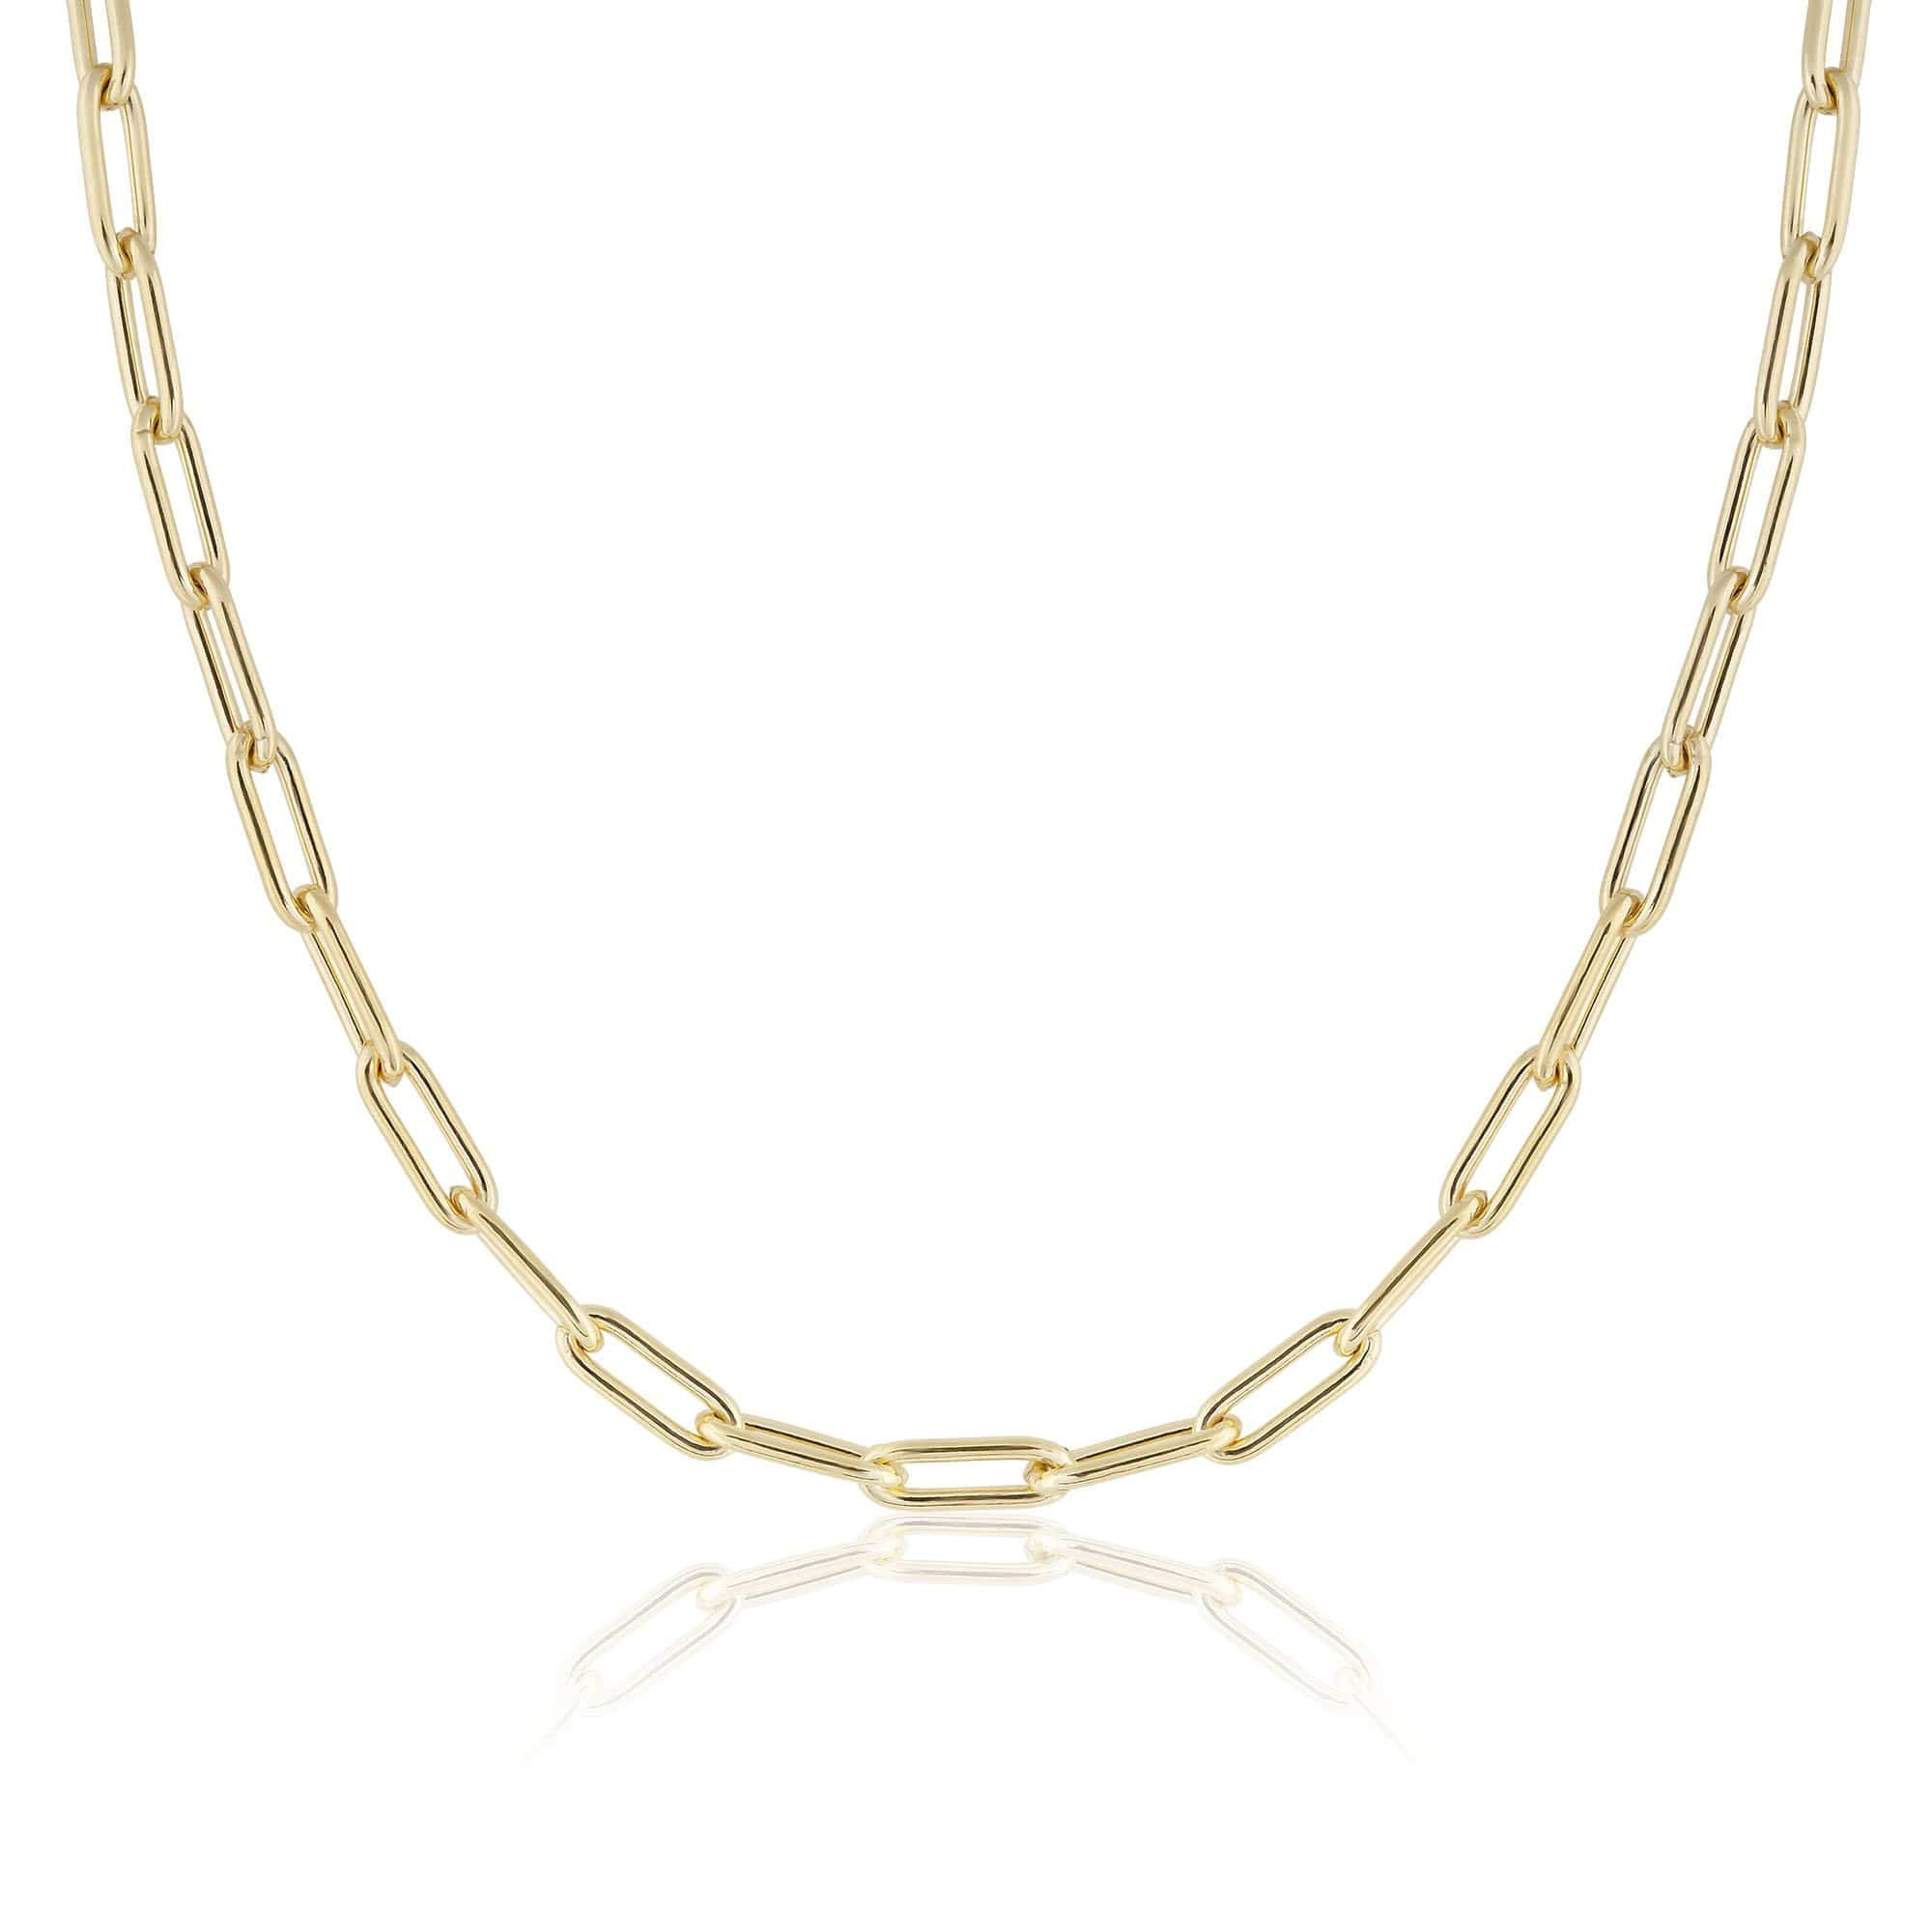 ela rae heavy rectangle chain necklace 14k yellow gold plate